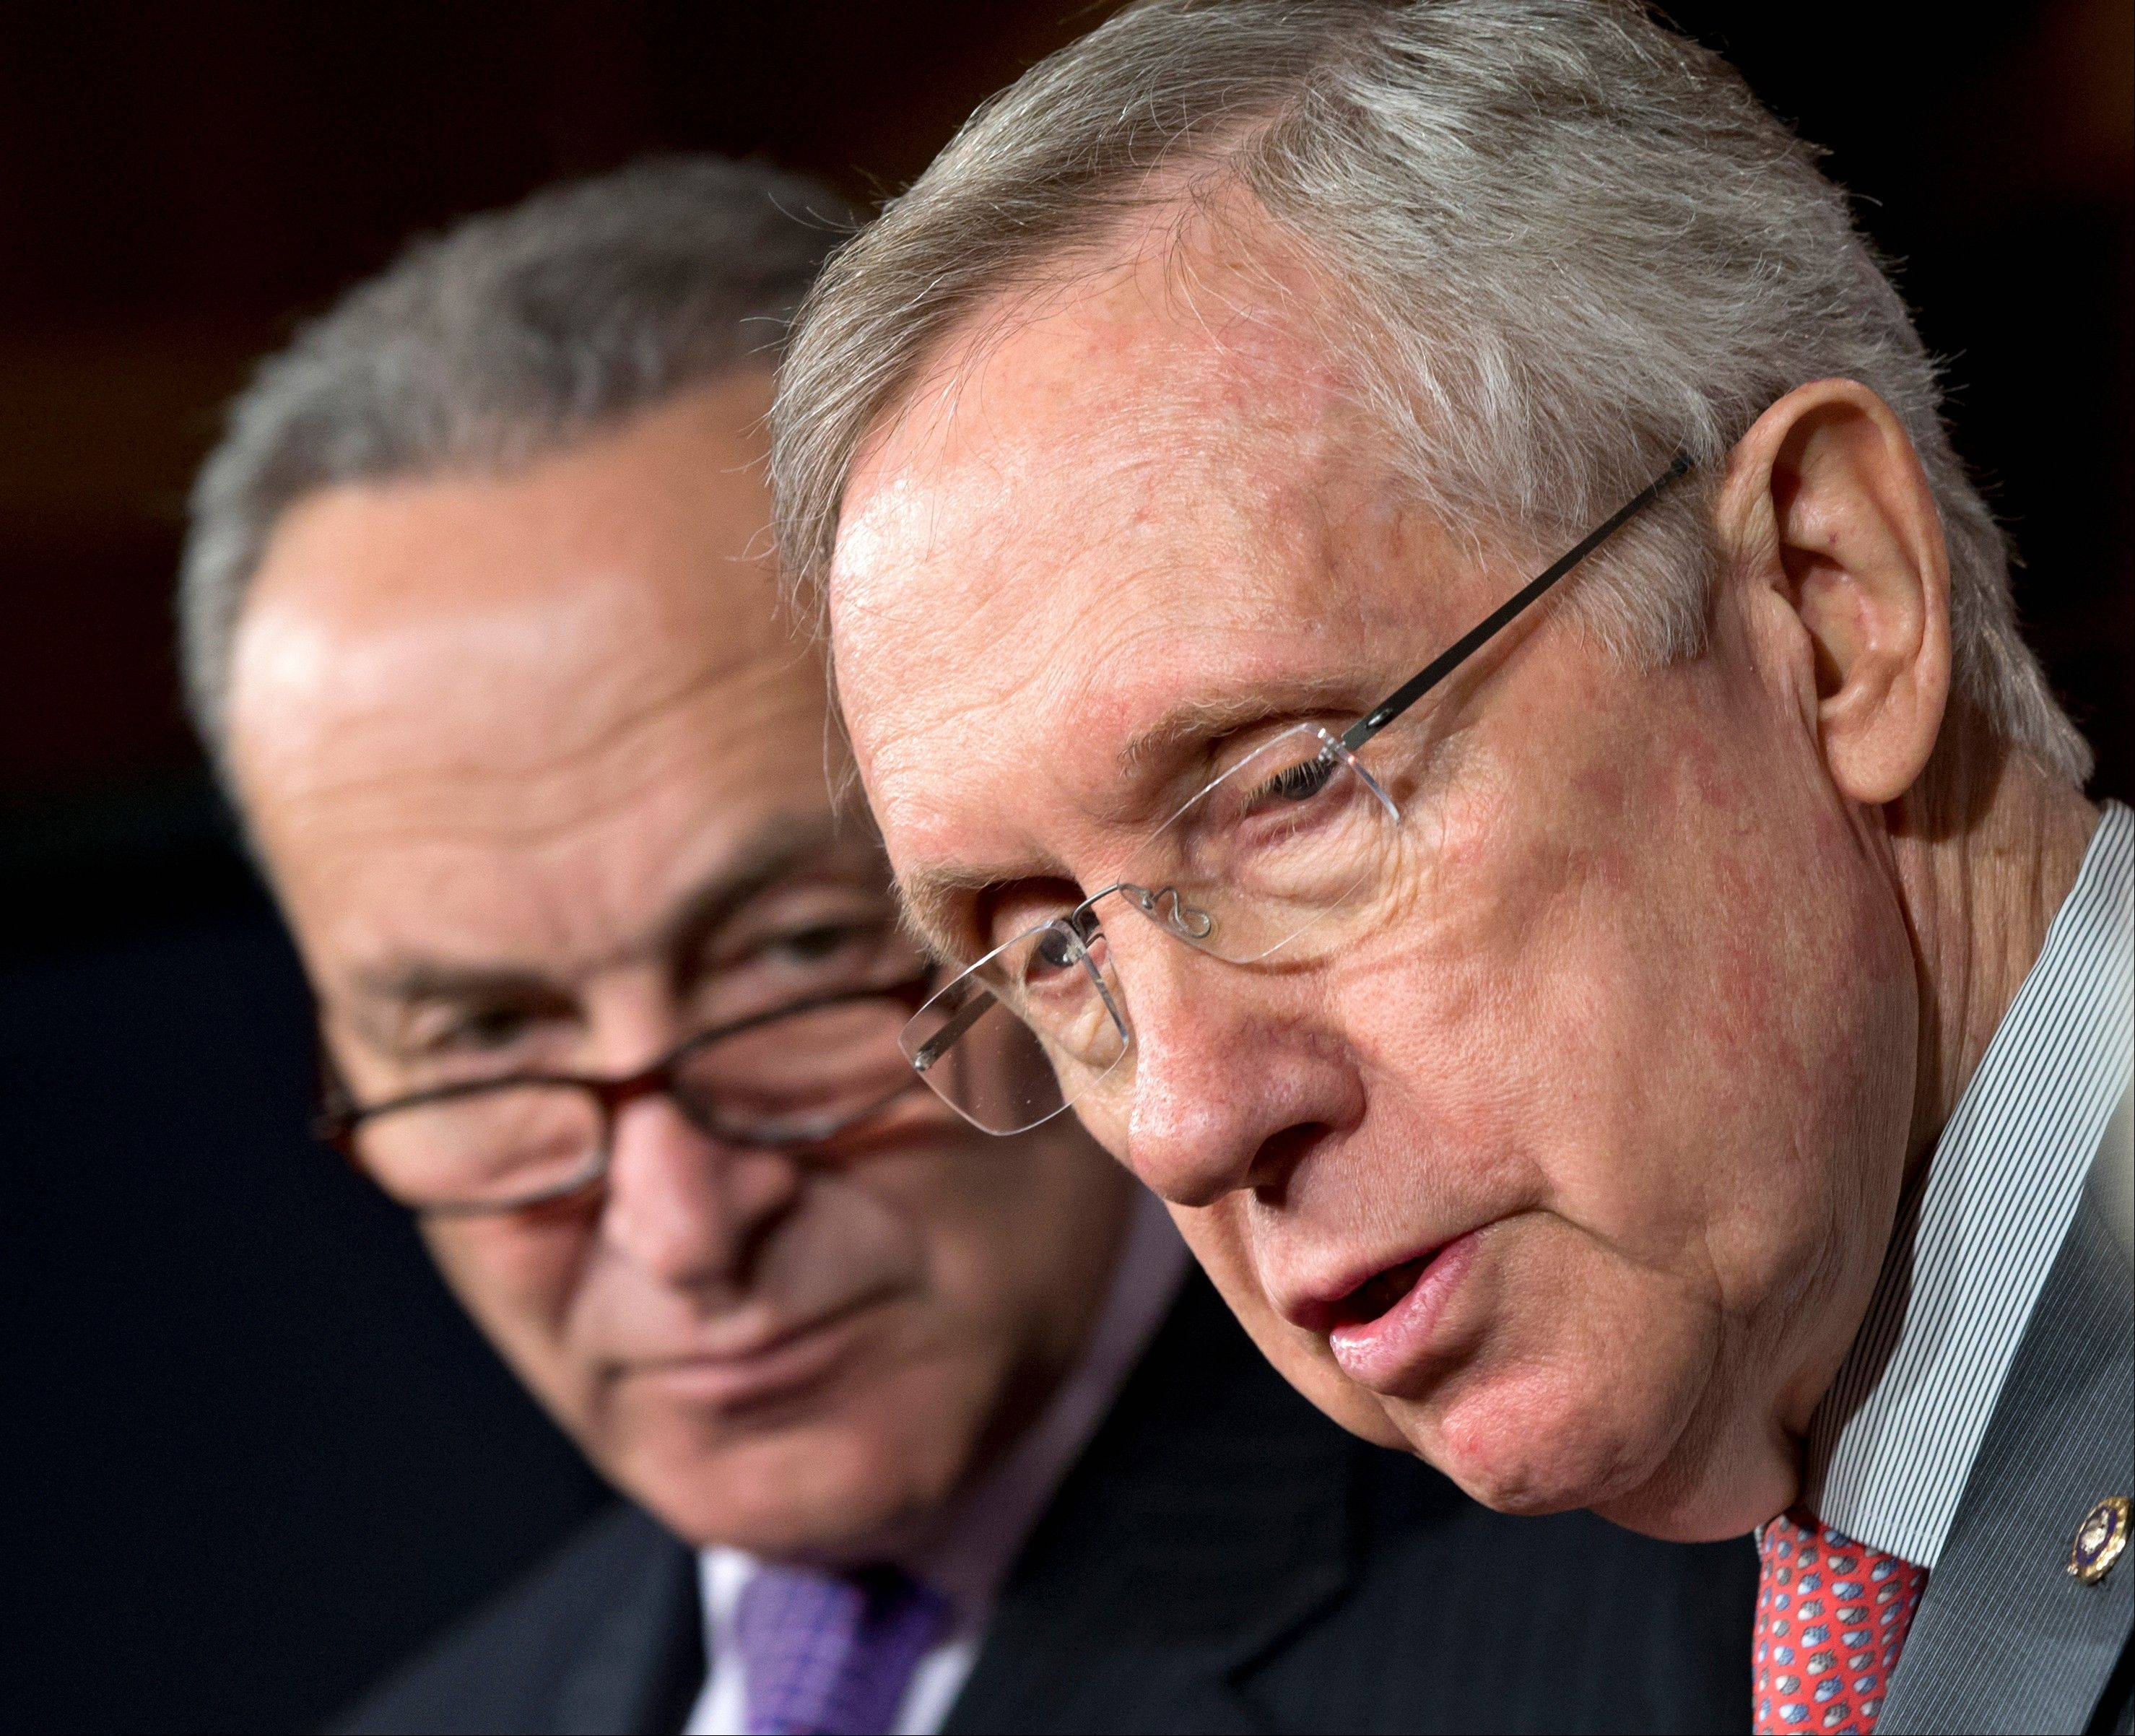 Senate Majority Leader Harry Reid of Nev., right, accompanied by Sen. Charles Schumer, a New York Democrat, faces reporters on Capitol Hill Thursday to talk about the impending automatic spending cuts that would take effect Friday.